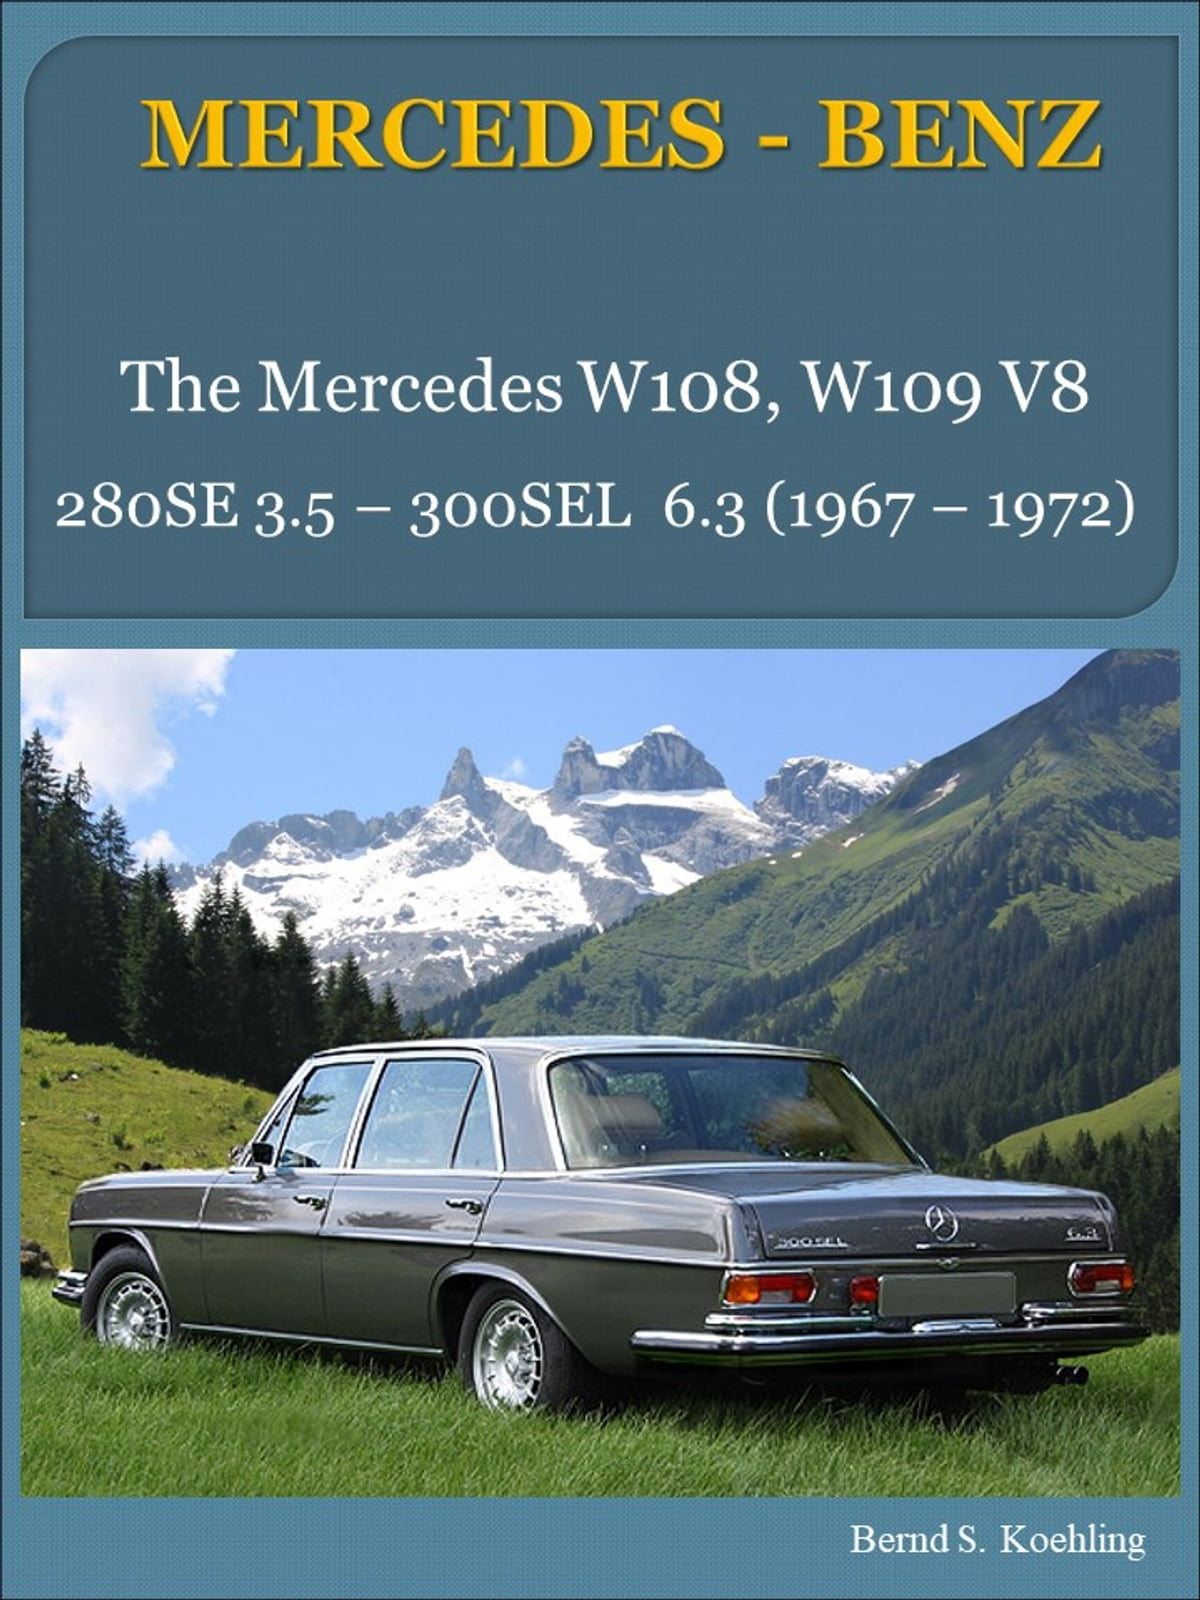 Mercedes benz w108 w109 v8 with buyers guide and chassis number mercedes benz w108 w109 v8 with buyers guide and chassis numberdata card explanation ebook by bernd s koehling 1230000032376 rakuten kobo fandeluxe Gallery